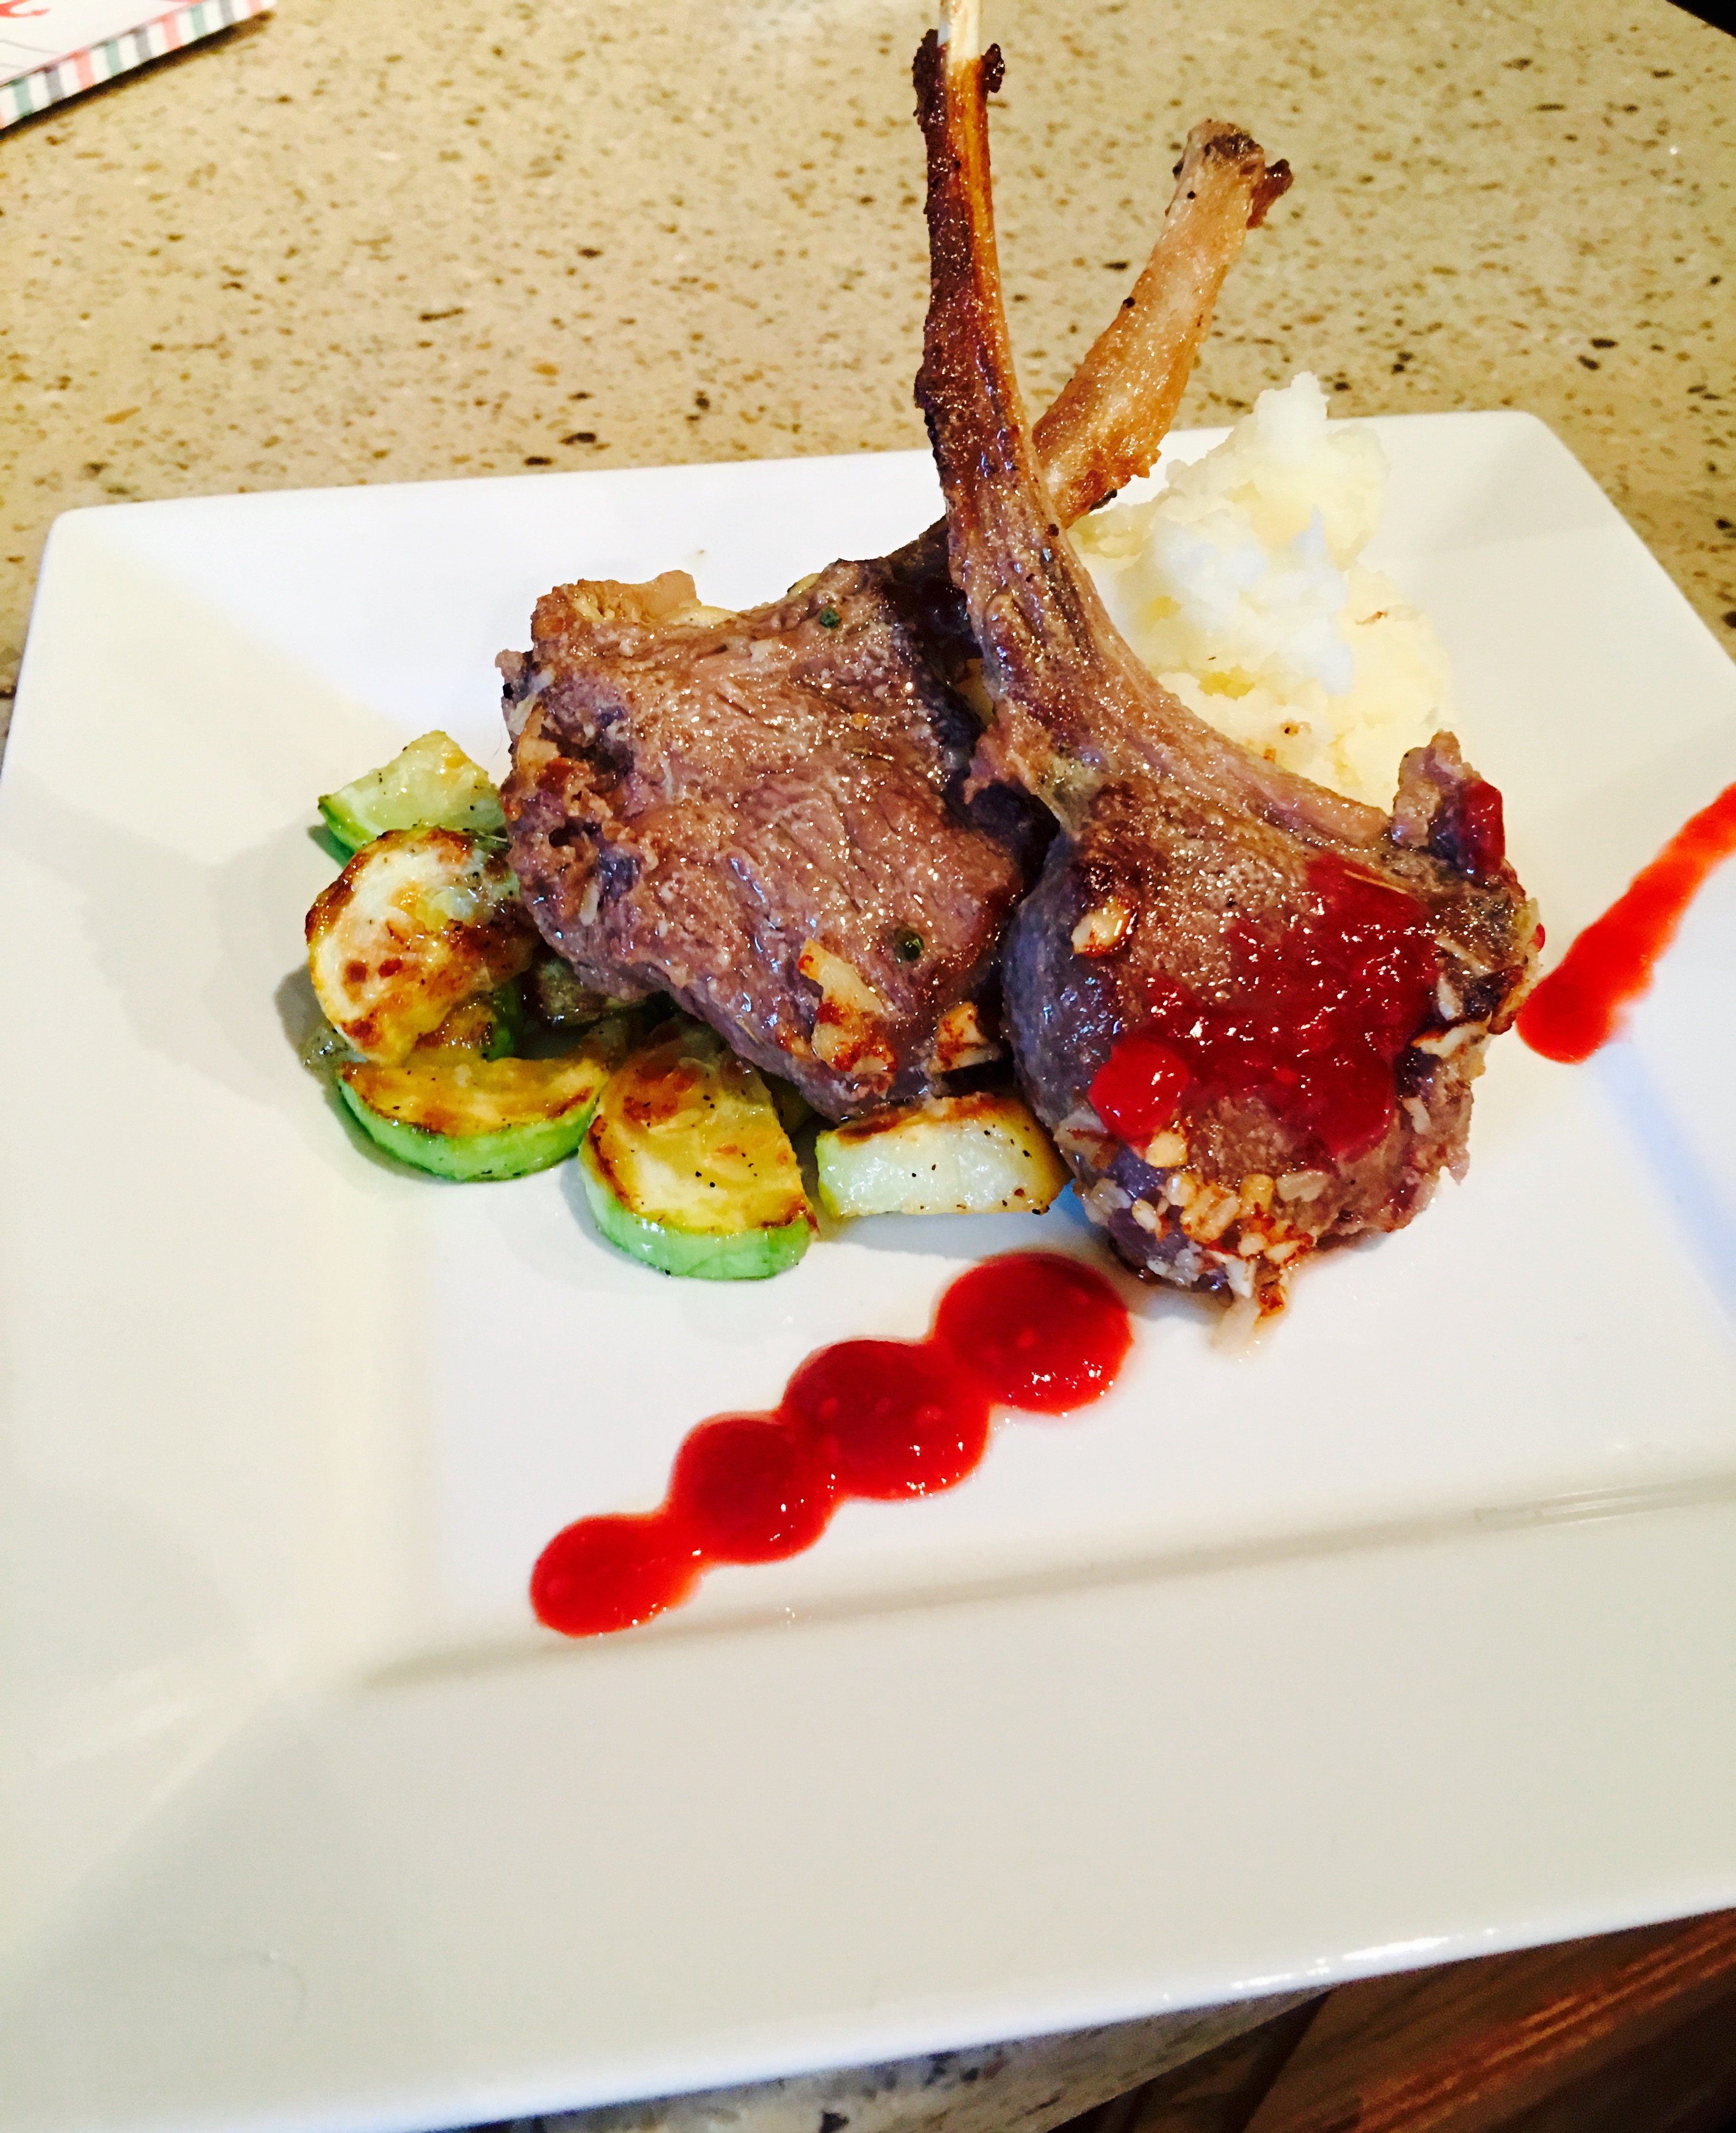 Appealing Only Lamb Chop I Ever Knew Was That Singing Never Ate Lambbefore To Know Wher I Liked It Or But It Always Looked Appetizingto Almond Crusted Lamb Chops Haftoeat nice food Lamb Chops Near Me